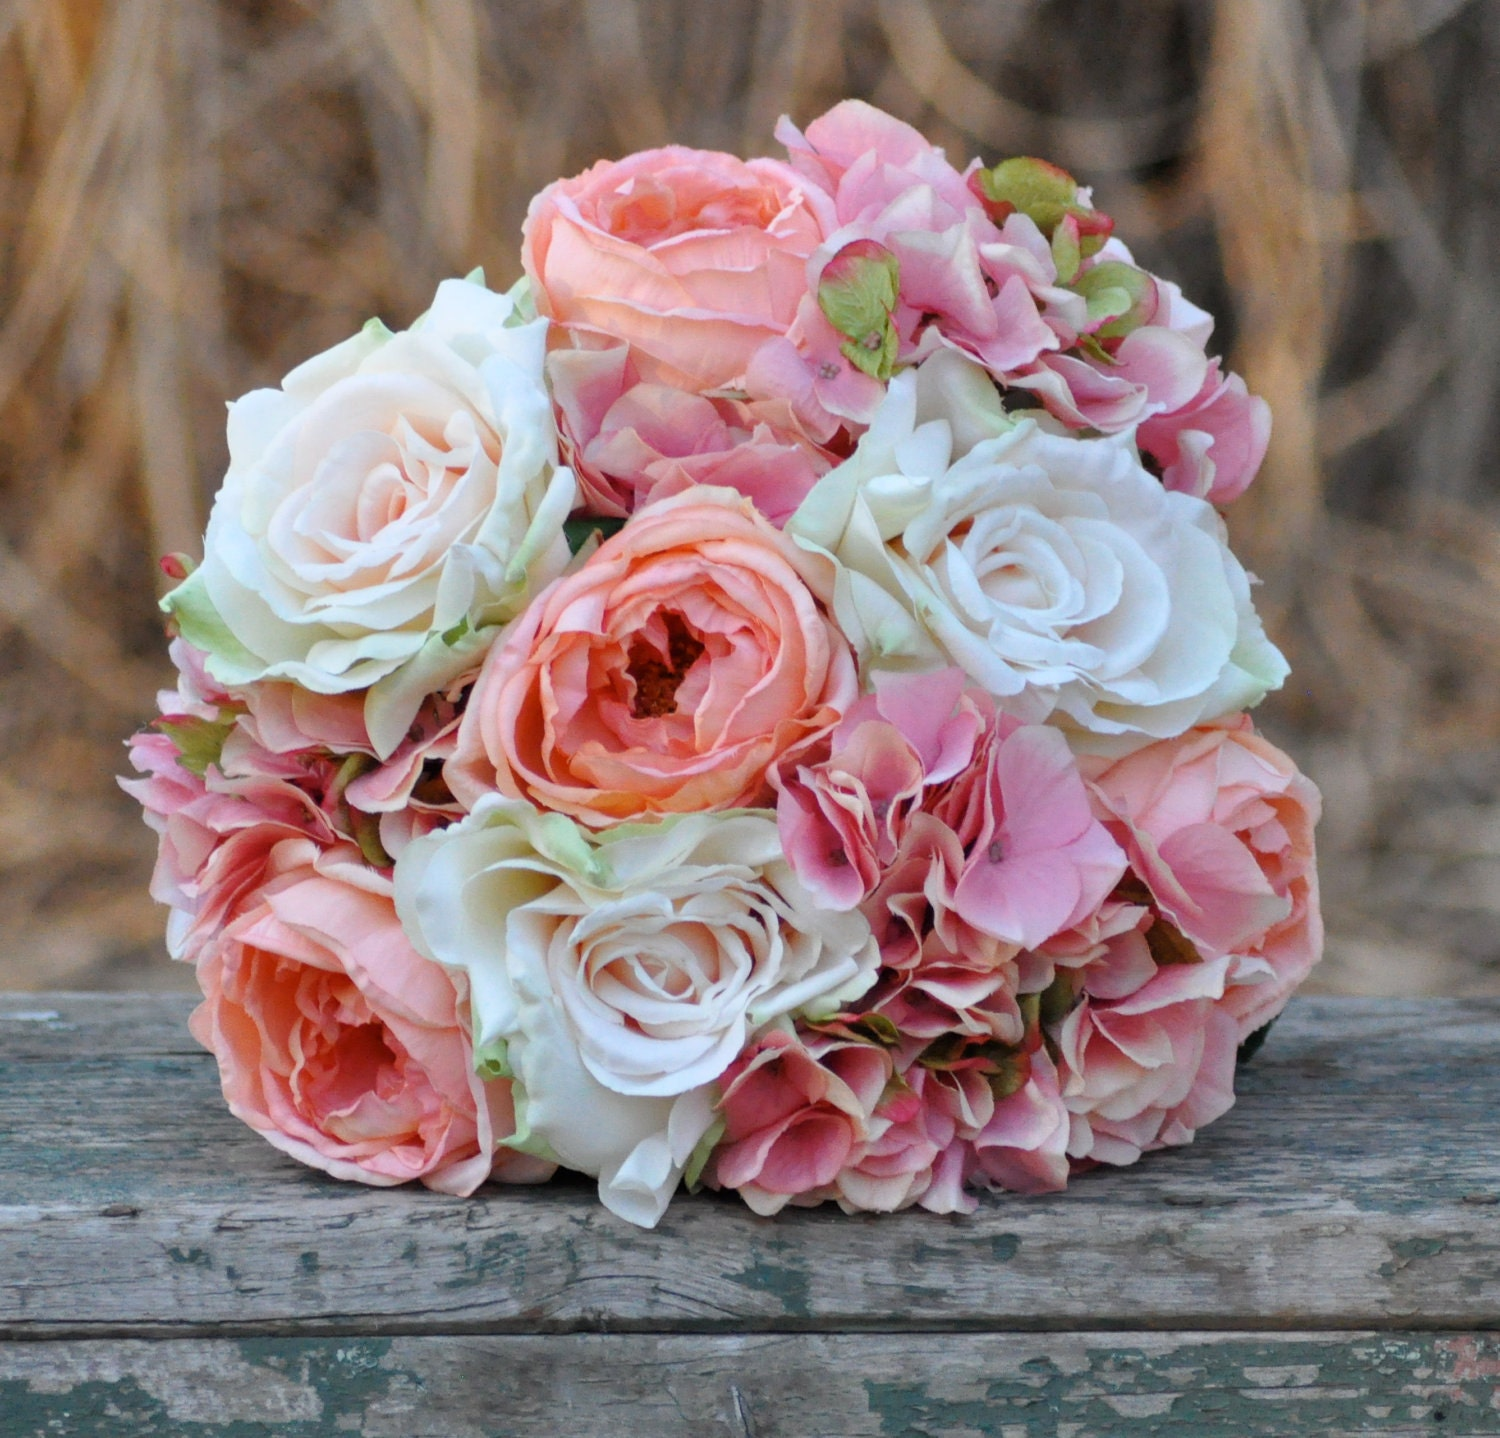 Blush Wedding Flowers: Coral Rose Blush Rose And Pink Hydrangea Wedding Bouquet Made